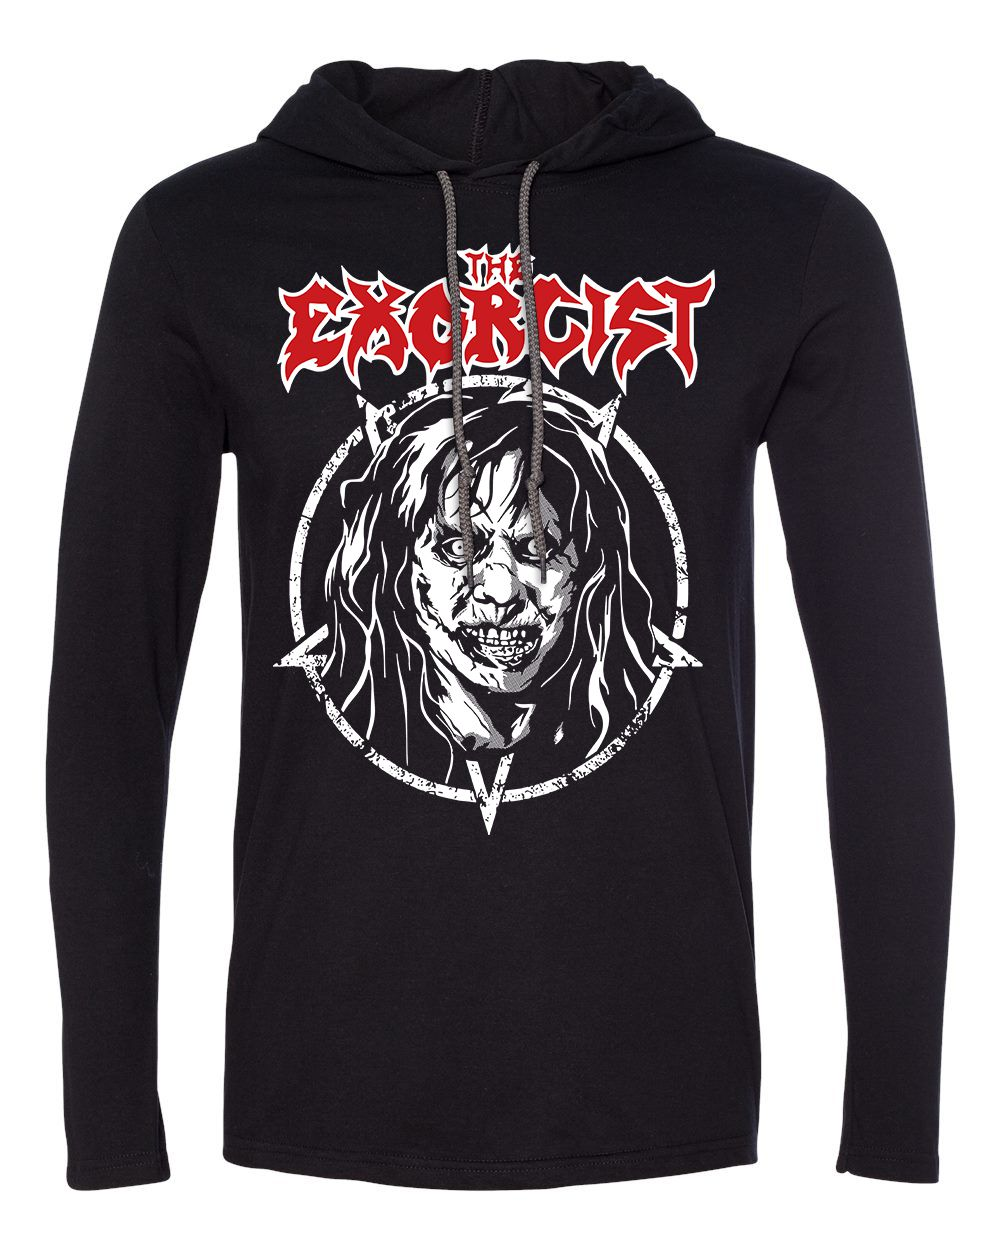 The Exorcist 001 metal series